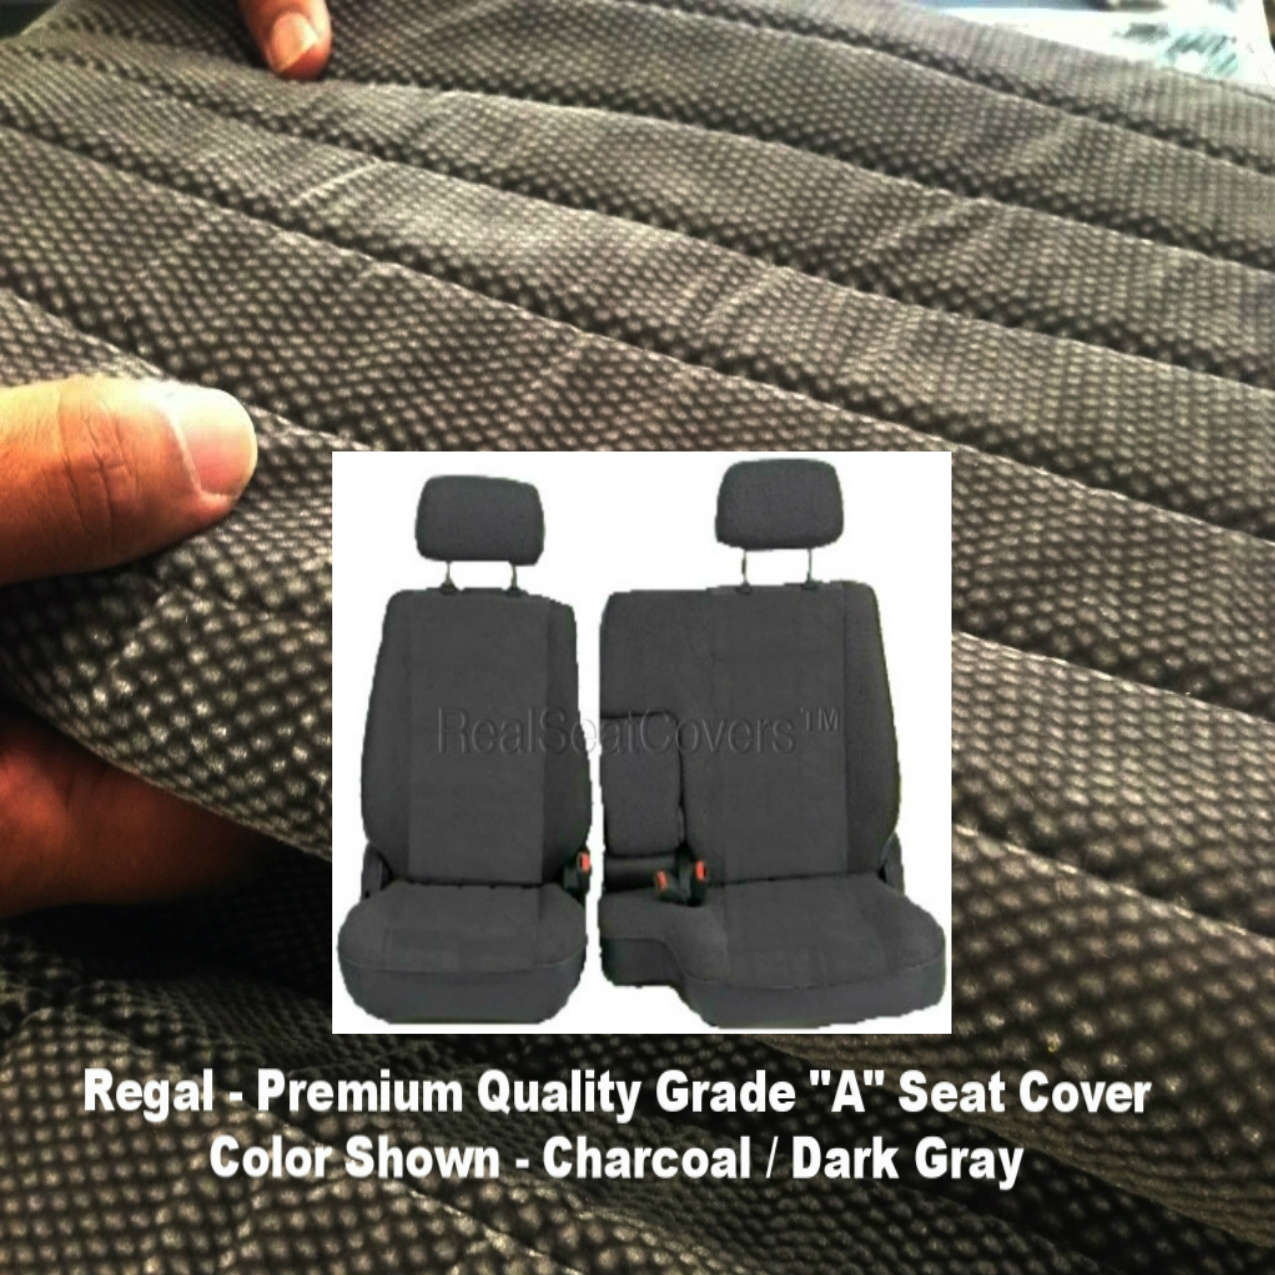 A67 Toyota Tacoma 1995 - 2000 Front 60/40 Split Bench Seat Covers Adjustable Headrest Armrest Access Charcoal Dark Gray